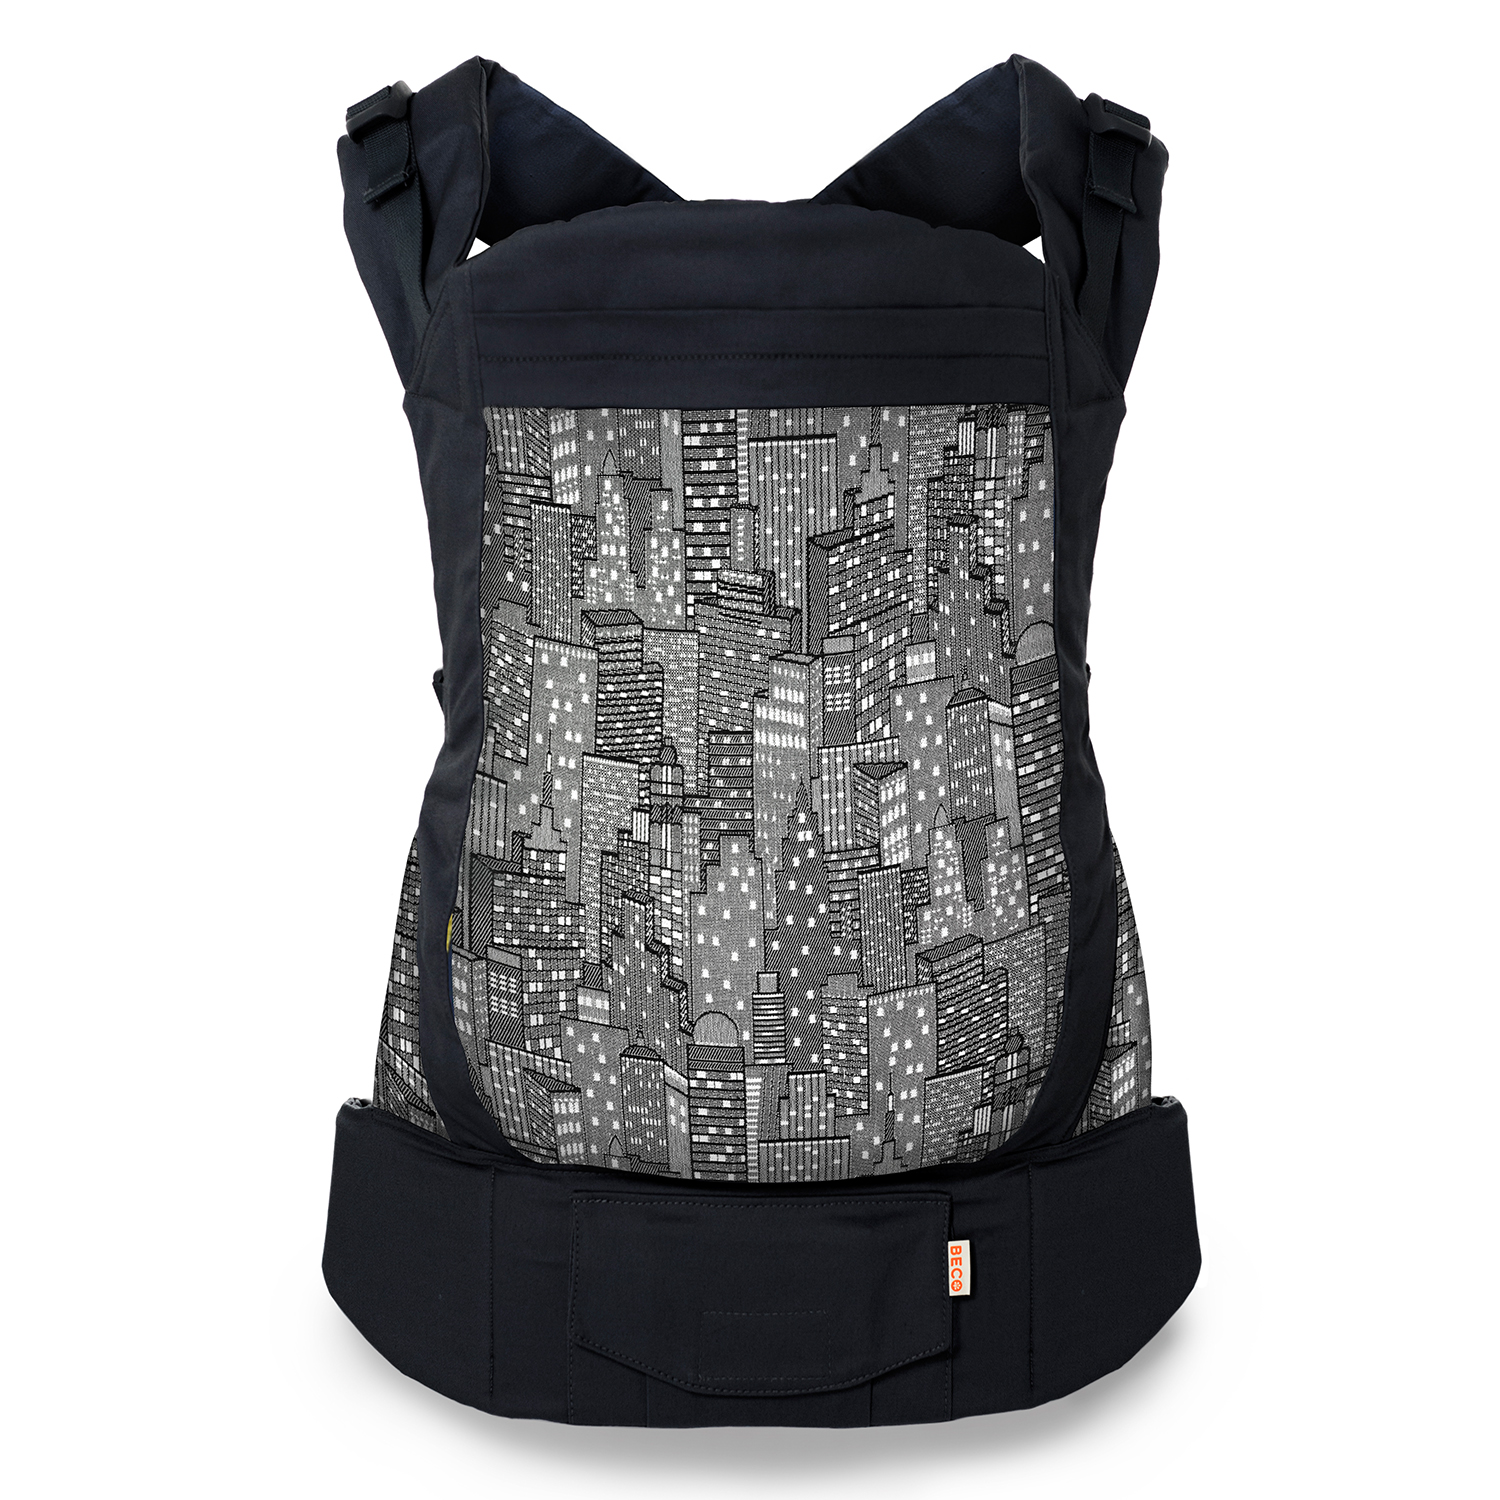 BECO Toddler Carrier - Limited Edition Gotham